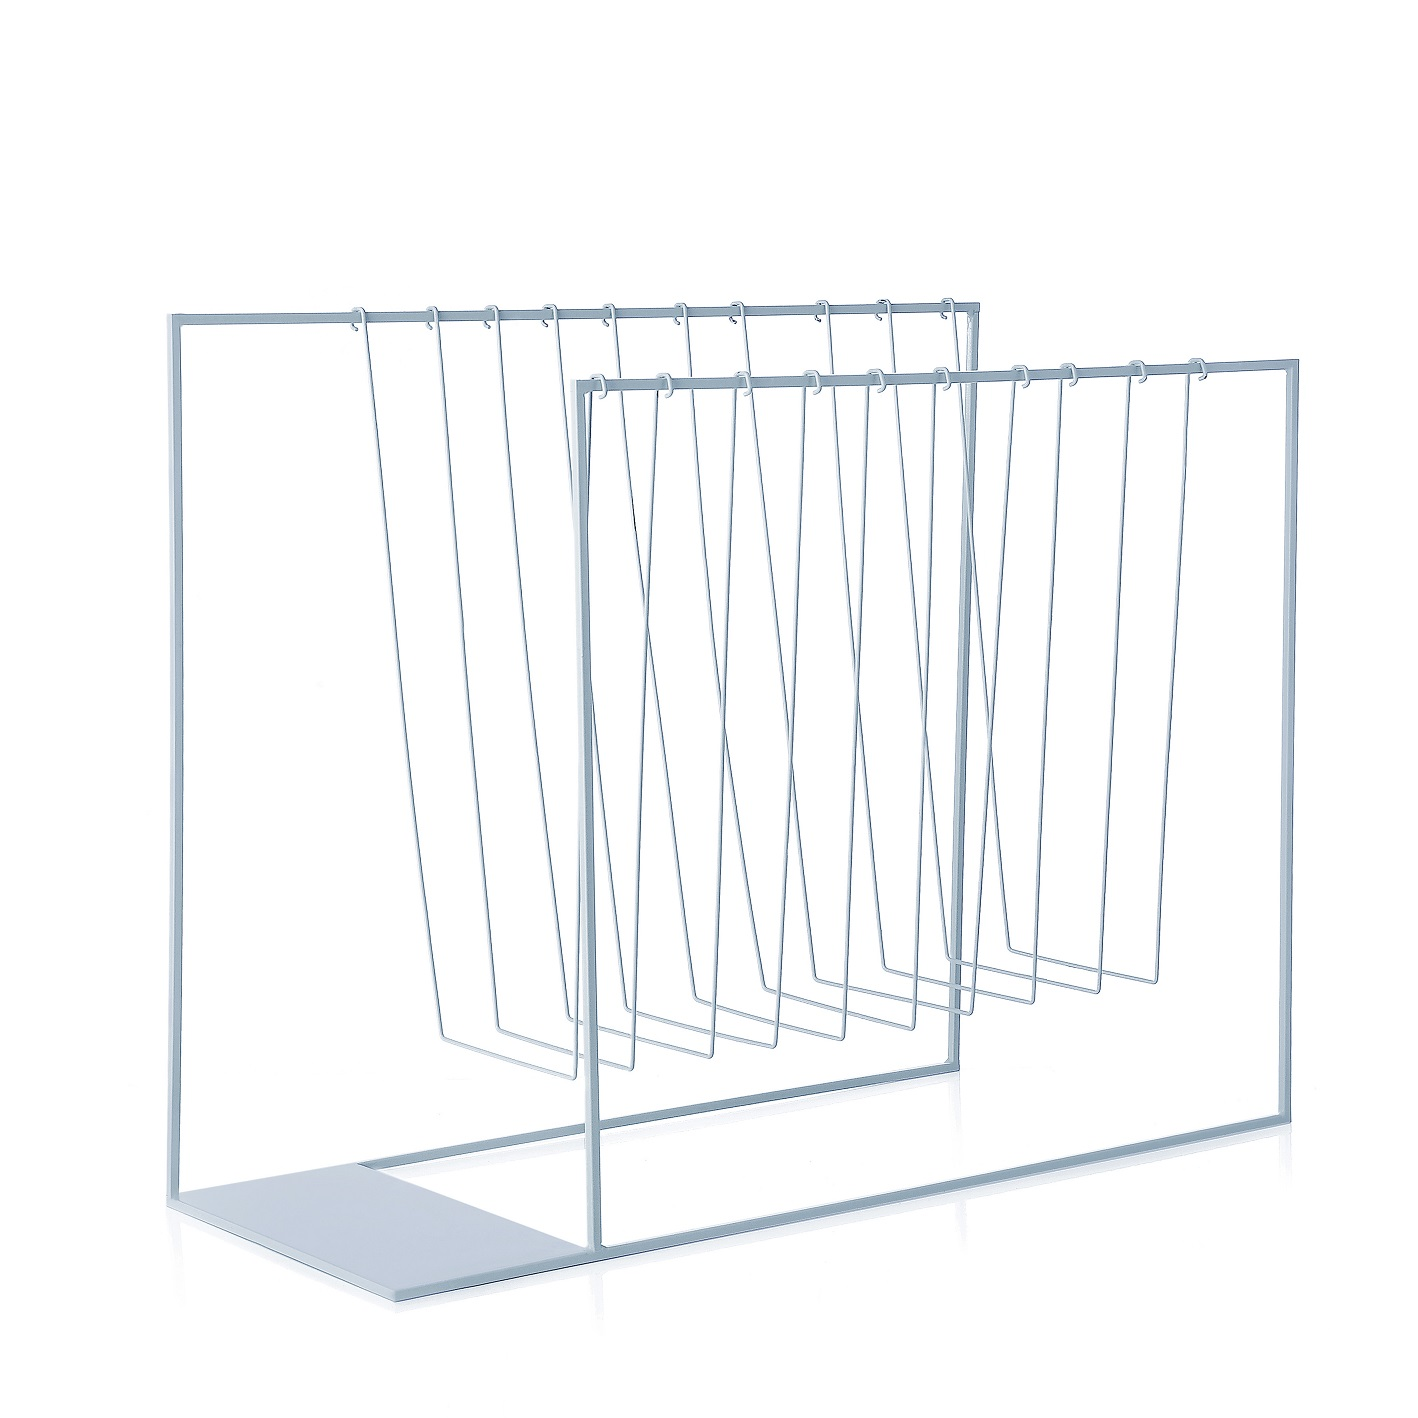 Magazine Rack L'Abitare Milano Geometrical Lines Light Blue